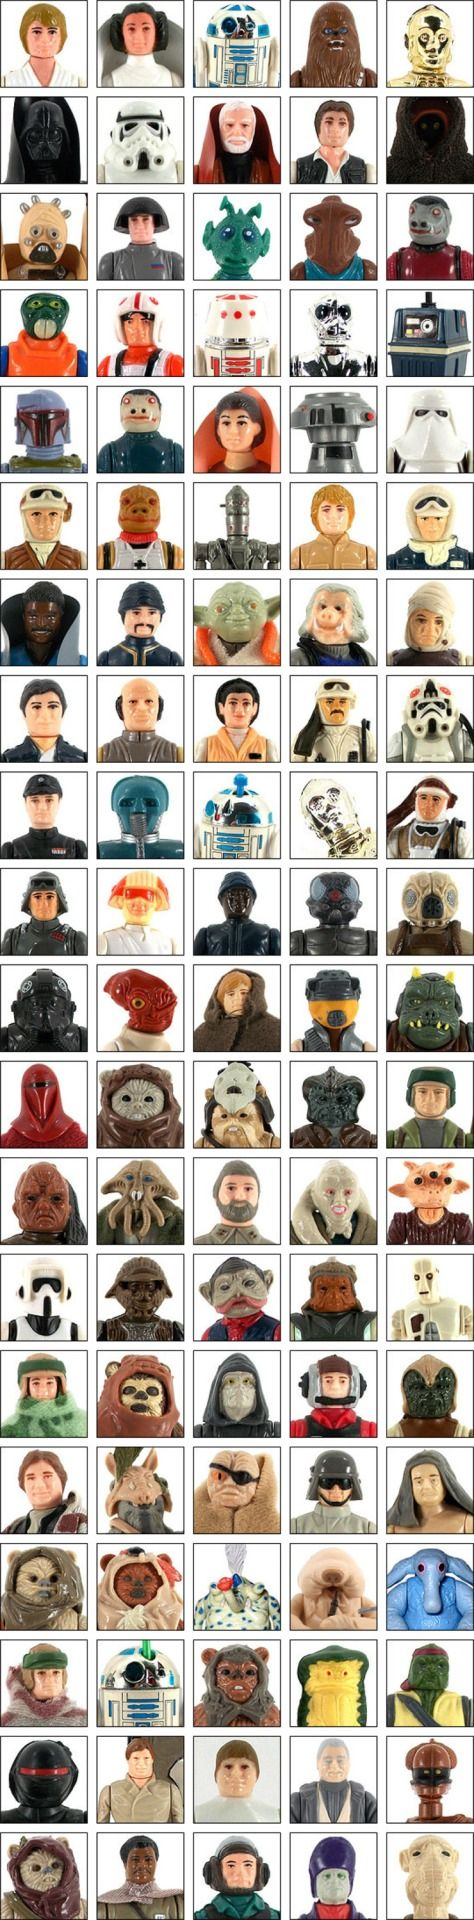 Have you seen any of these Jedis, Rebels, Droids, Ewoks, or other Aliens? Are you curious what they might be worth today? Check out our free Vintage Star Wars price guide today.